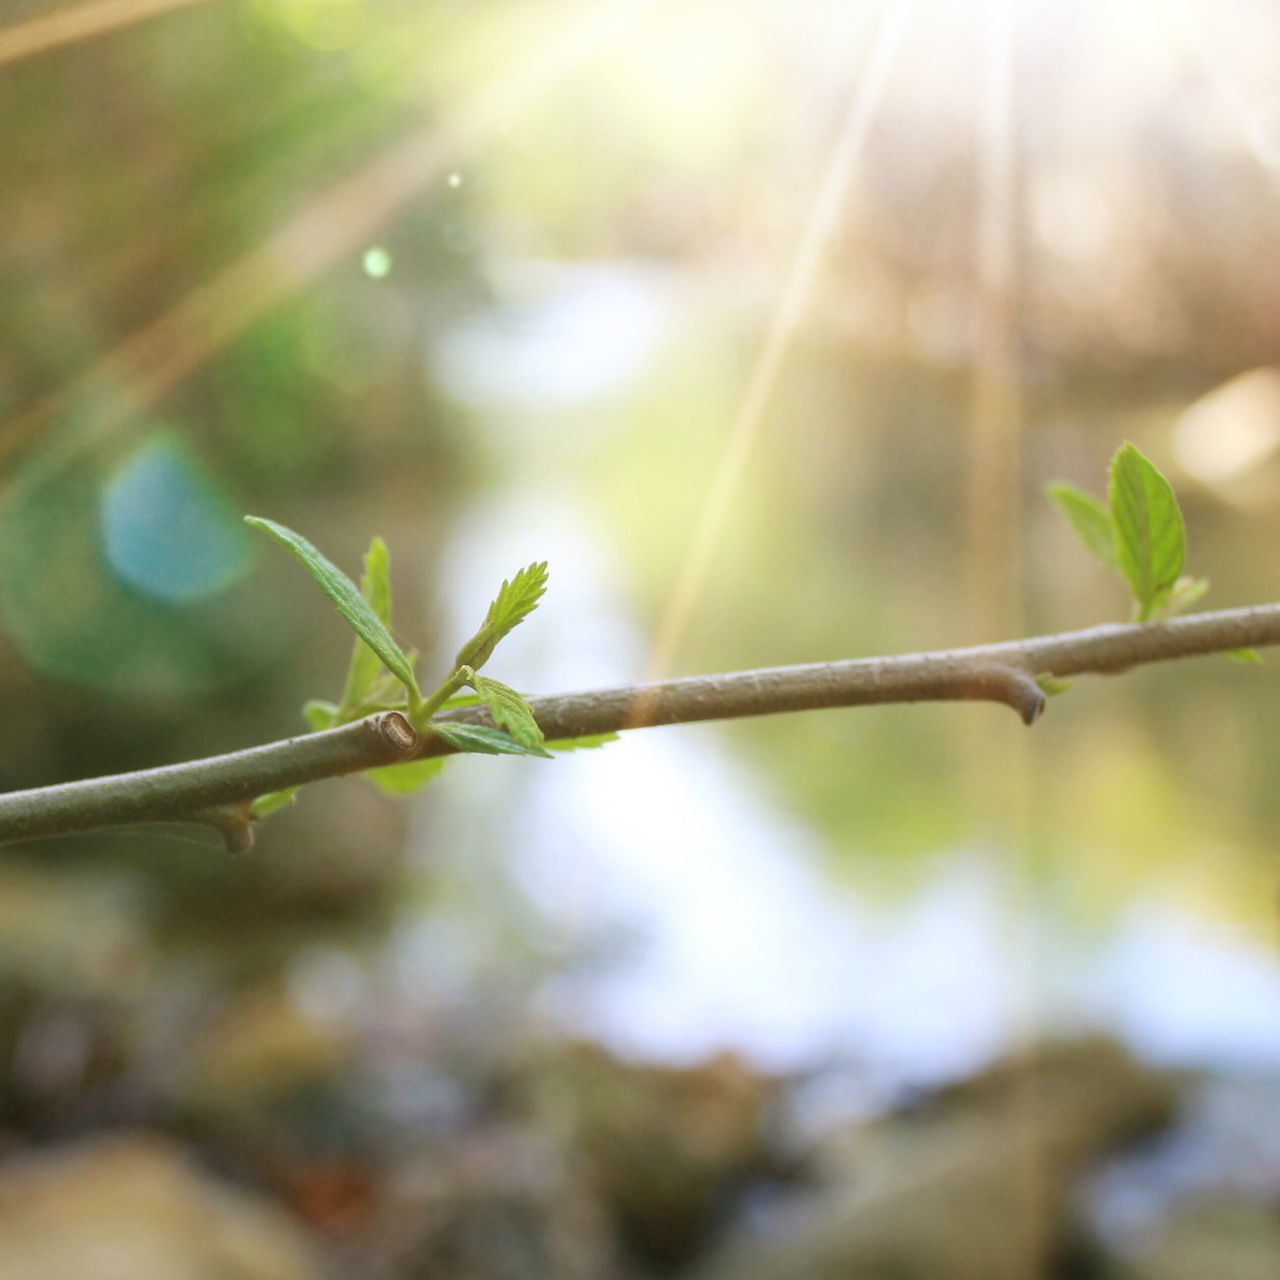 Plant Leaf Focus On Foreground No People Close-up Nature Growth Day Outdoors Green Color Animal Themes Sun Glare Sun Reflection Life Sun Glare And Plant